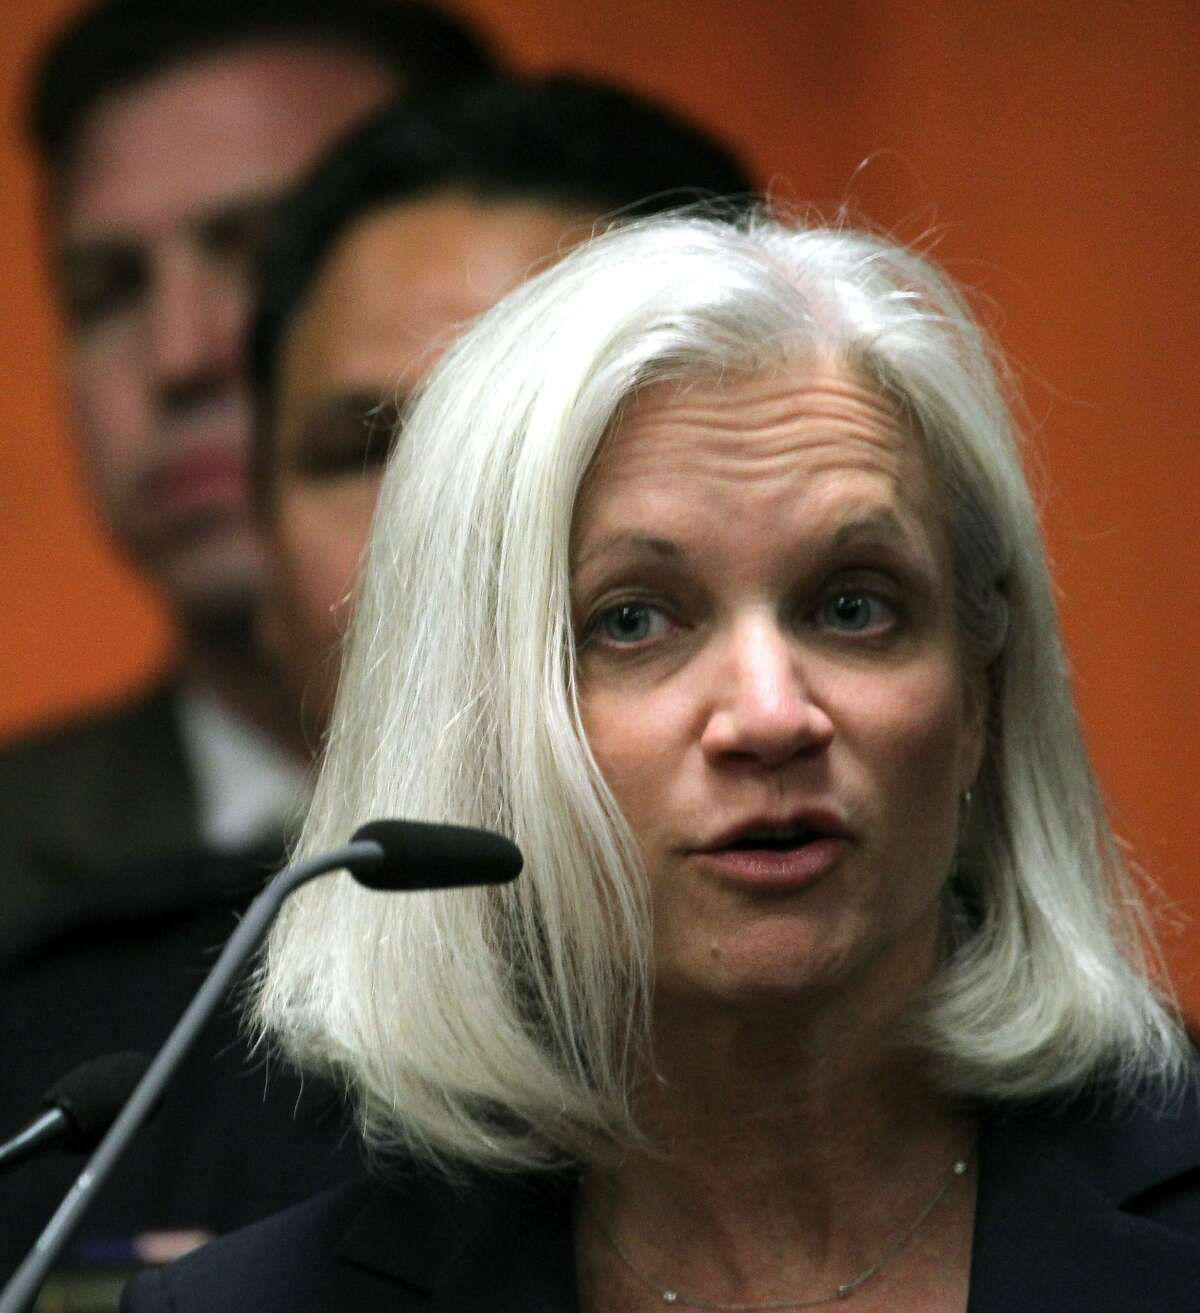 United States Attorney Melinda Haag, stood with Bay Area law enforcement representatives behind her, to announce the arrests of 13 members and associates of the 500 Block/C Street gang during a news conference in South San Francisco, Calif., Thursday, May 3, 2012. Three Immigration and Customs Enforcement agents were shot and injured during one of the raids Thursday is Petaluma Calif.